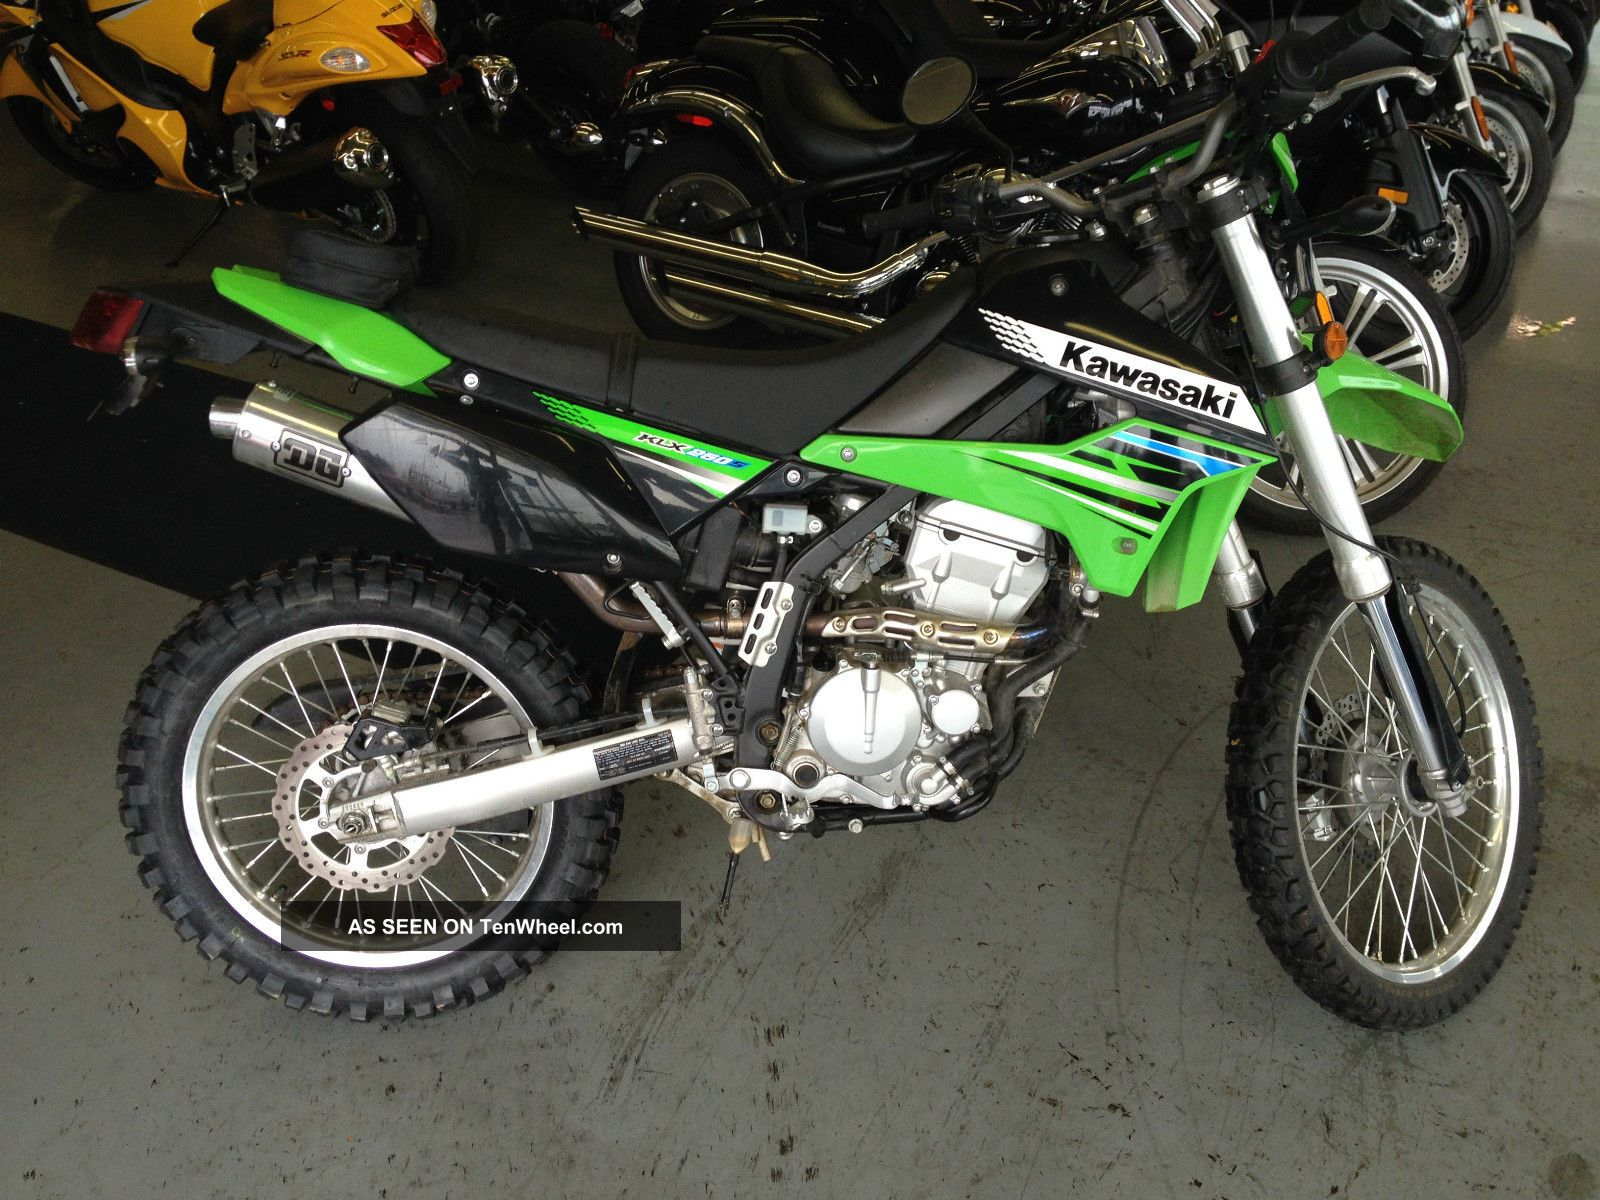 2012 kawasaki klx 250s 3 49 financing 61 monthly low insurance. Black Bedroom Furniture Sets. Home Design Ideas